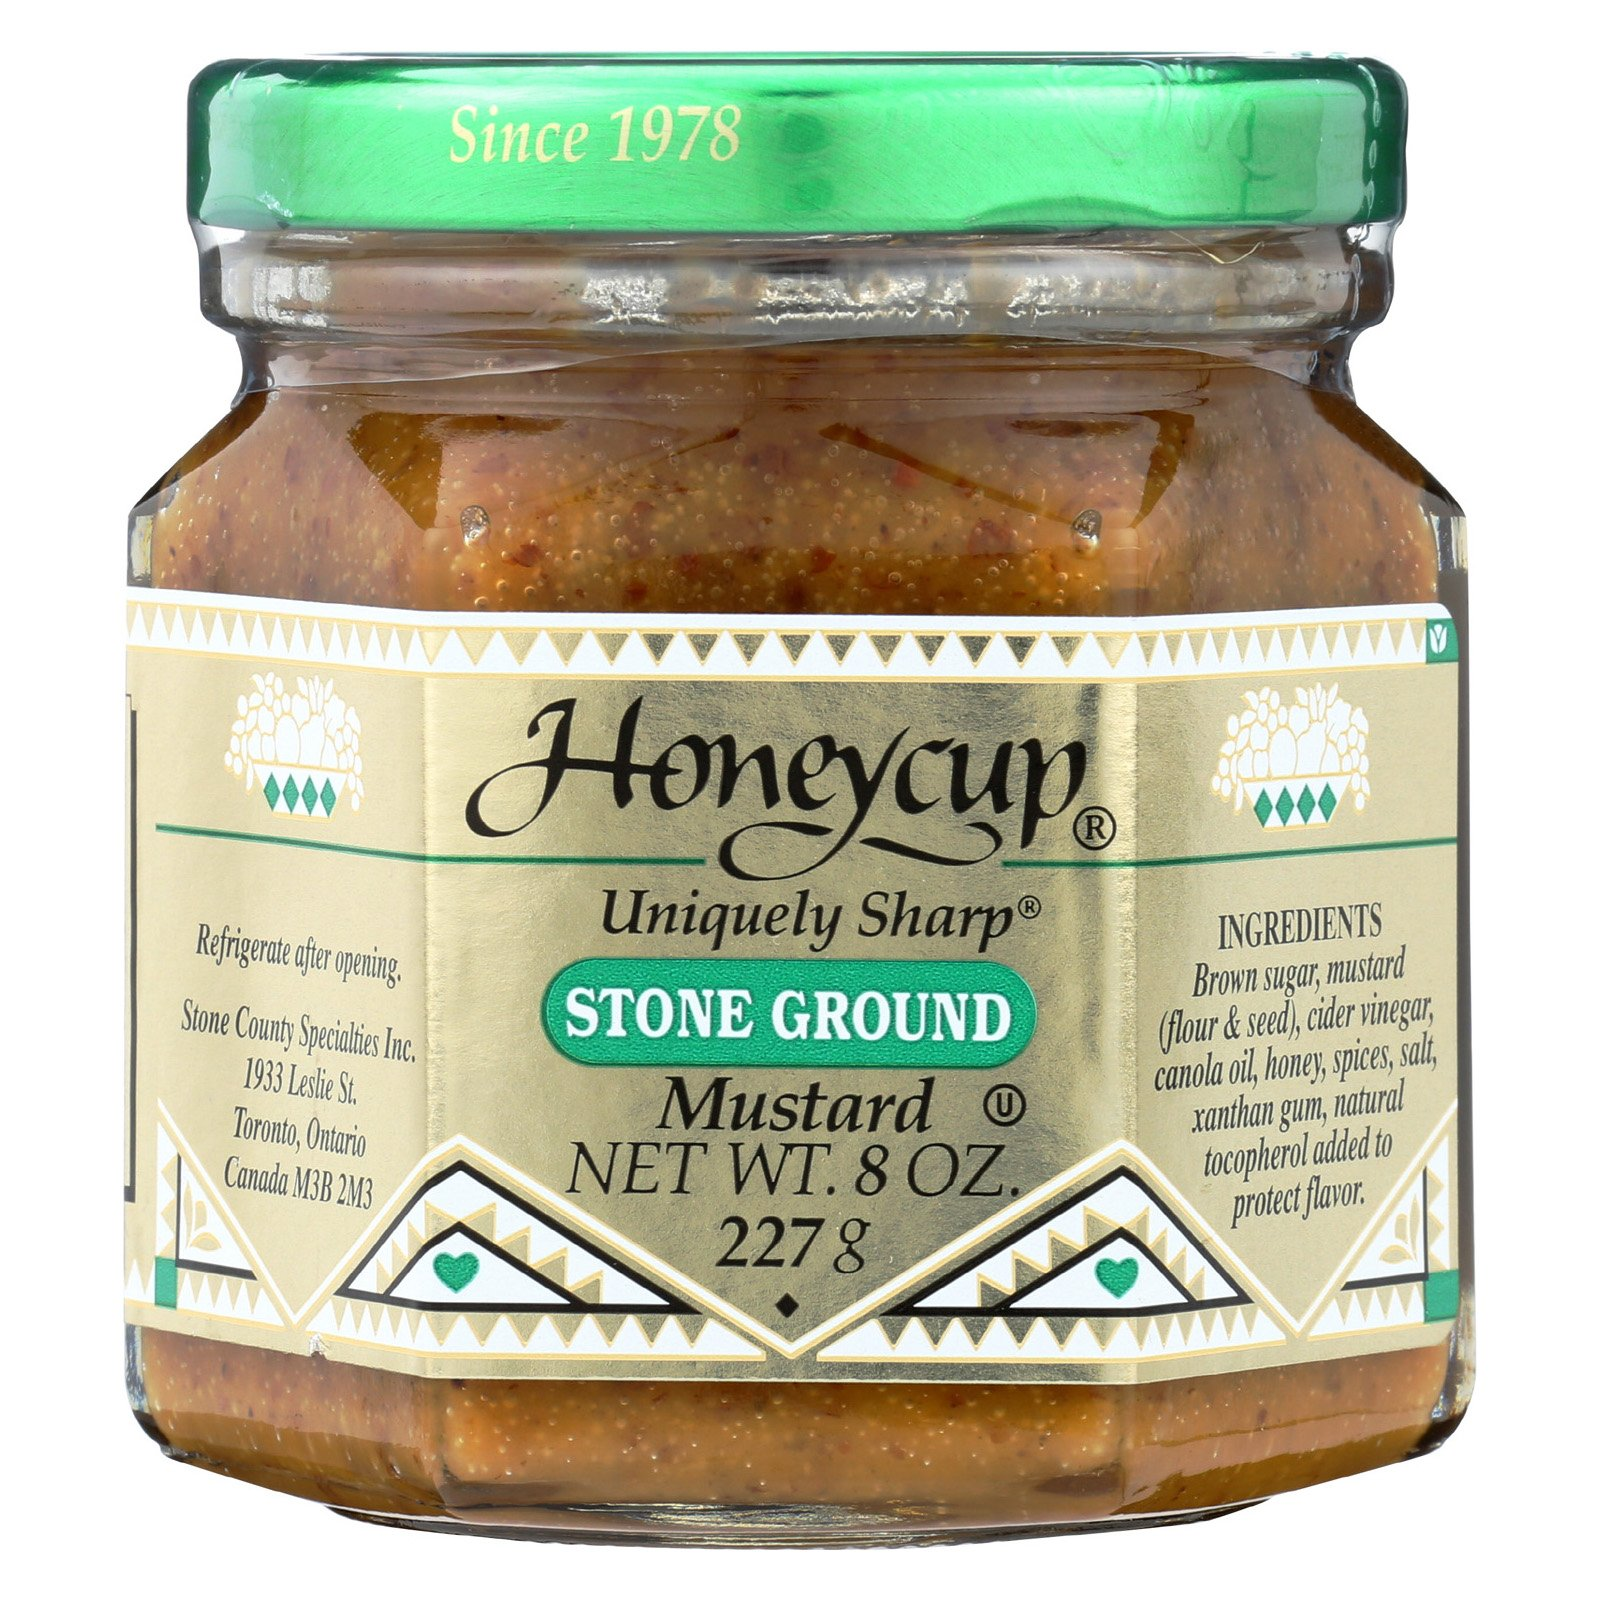 Honeycup Mustard - Stone Ground - Case of 6 - 8 oz.